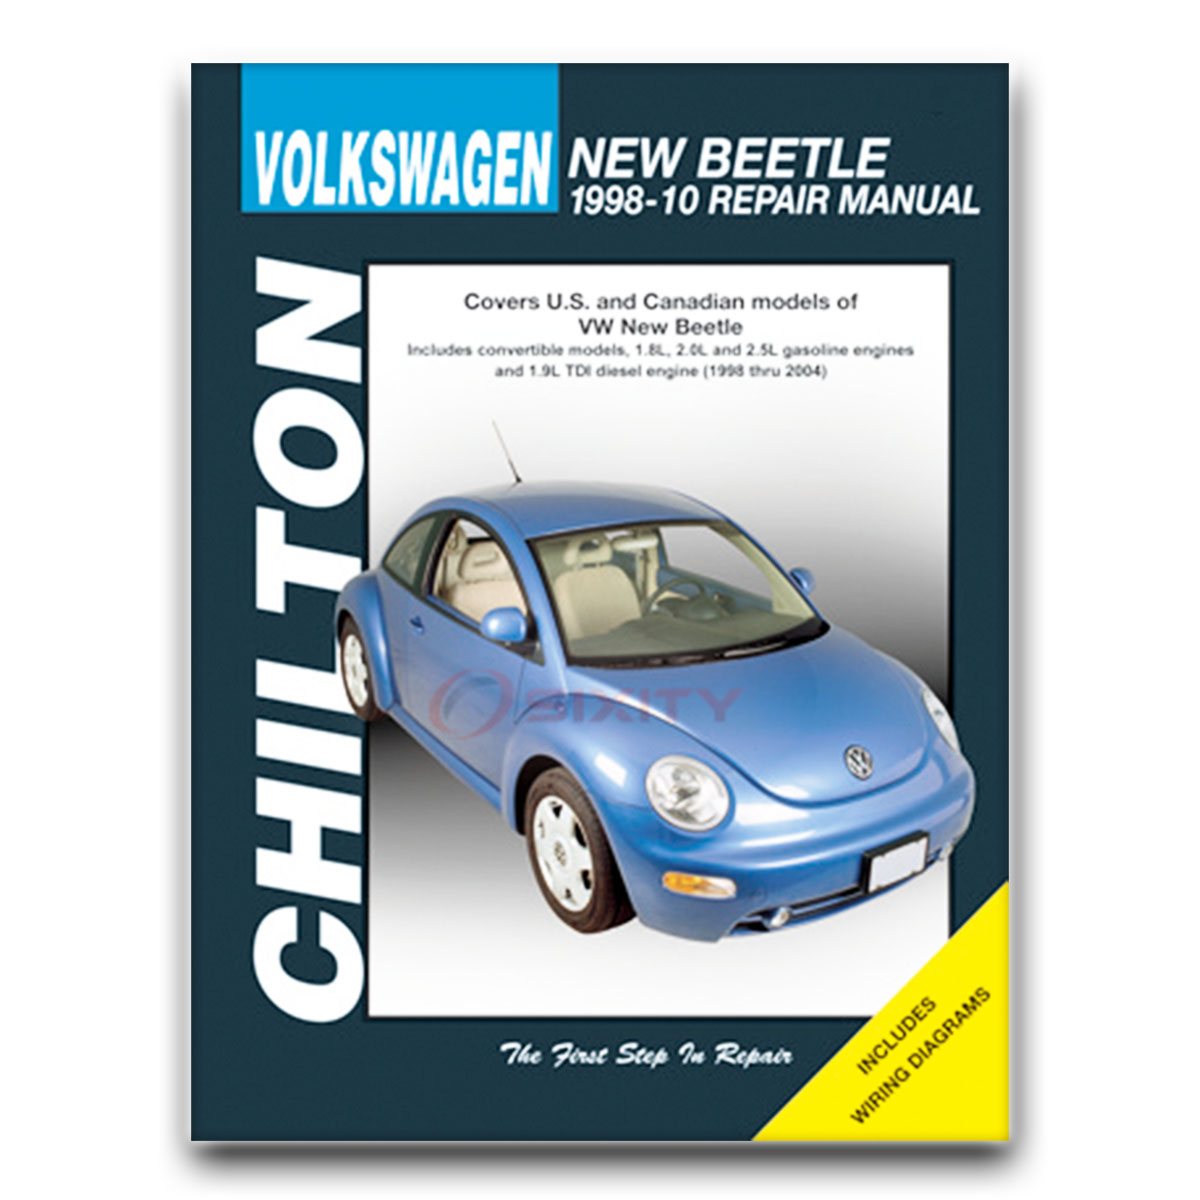 New Beetle Manual Auto Electrical Wiring Diagram Rover 620 Service Automotive Manuals 2000 Volkswagen